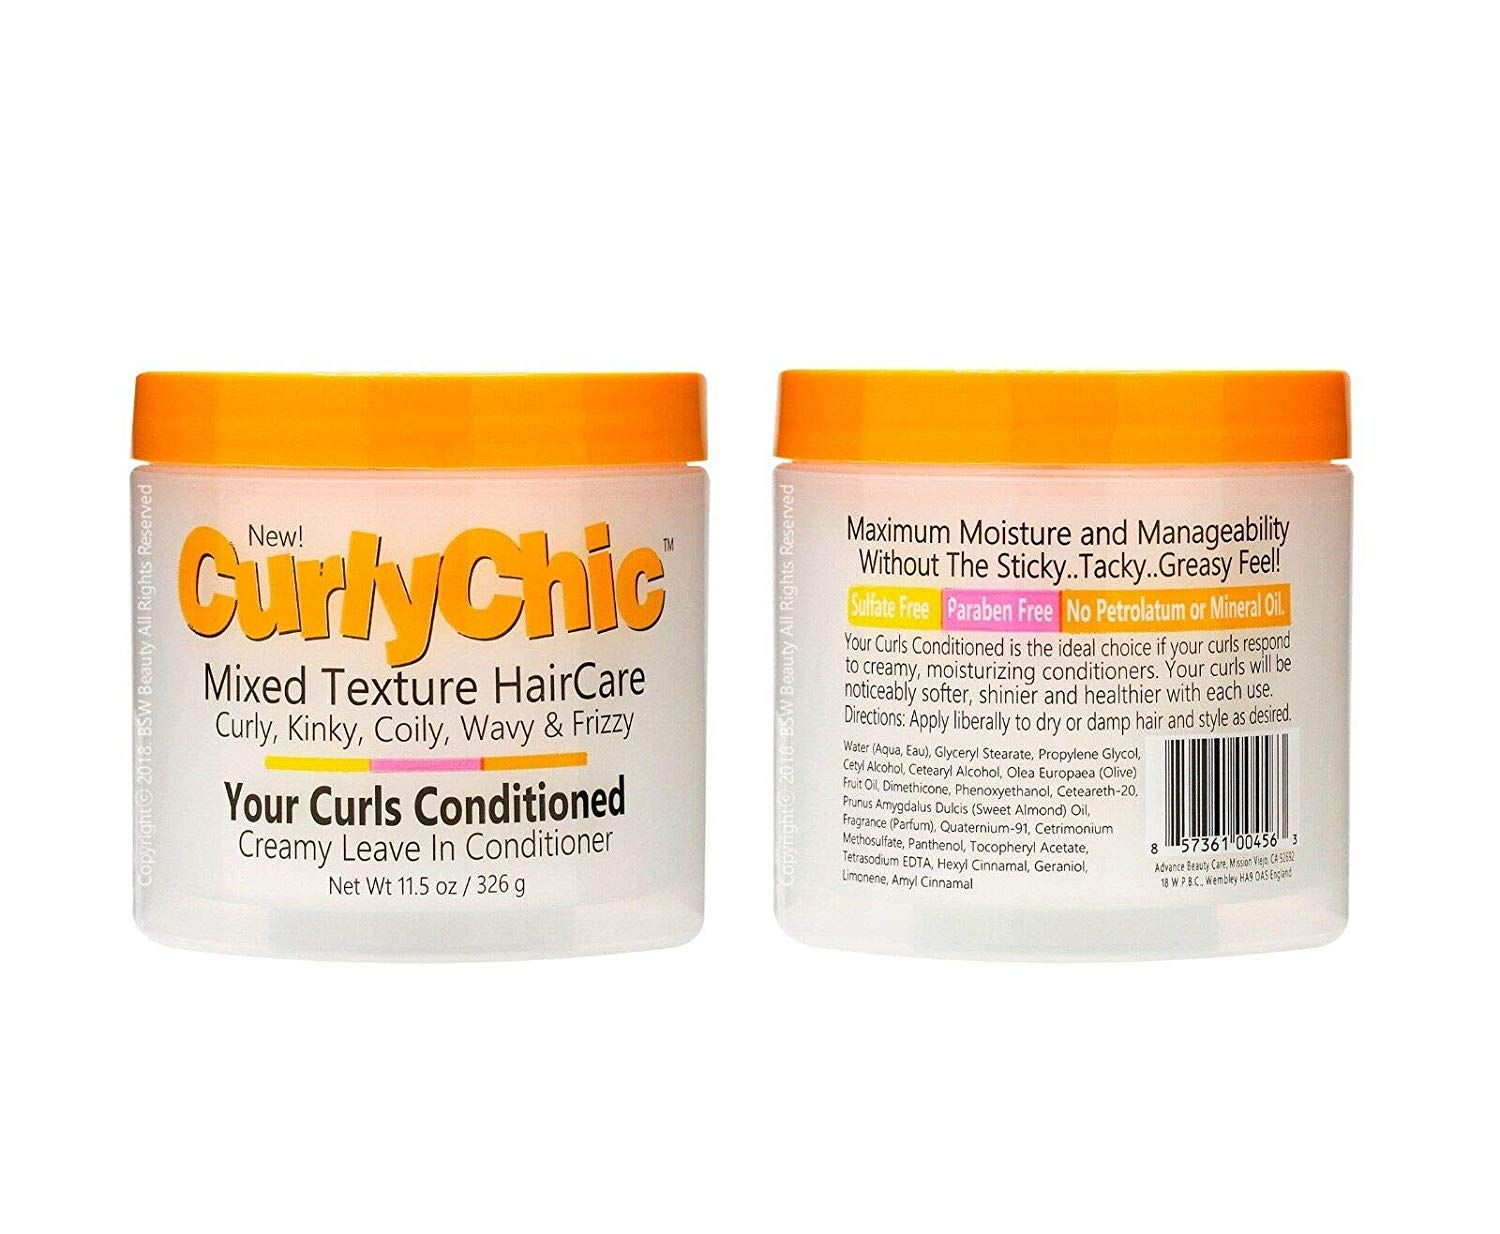 CurlyChic Your Curls Conditioned - 11.5oz